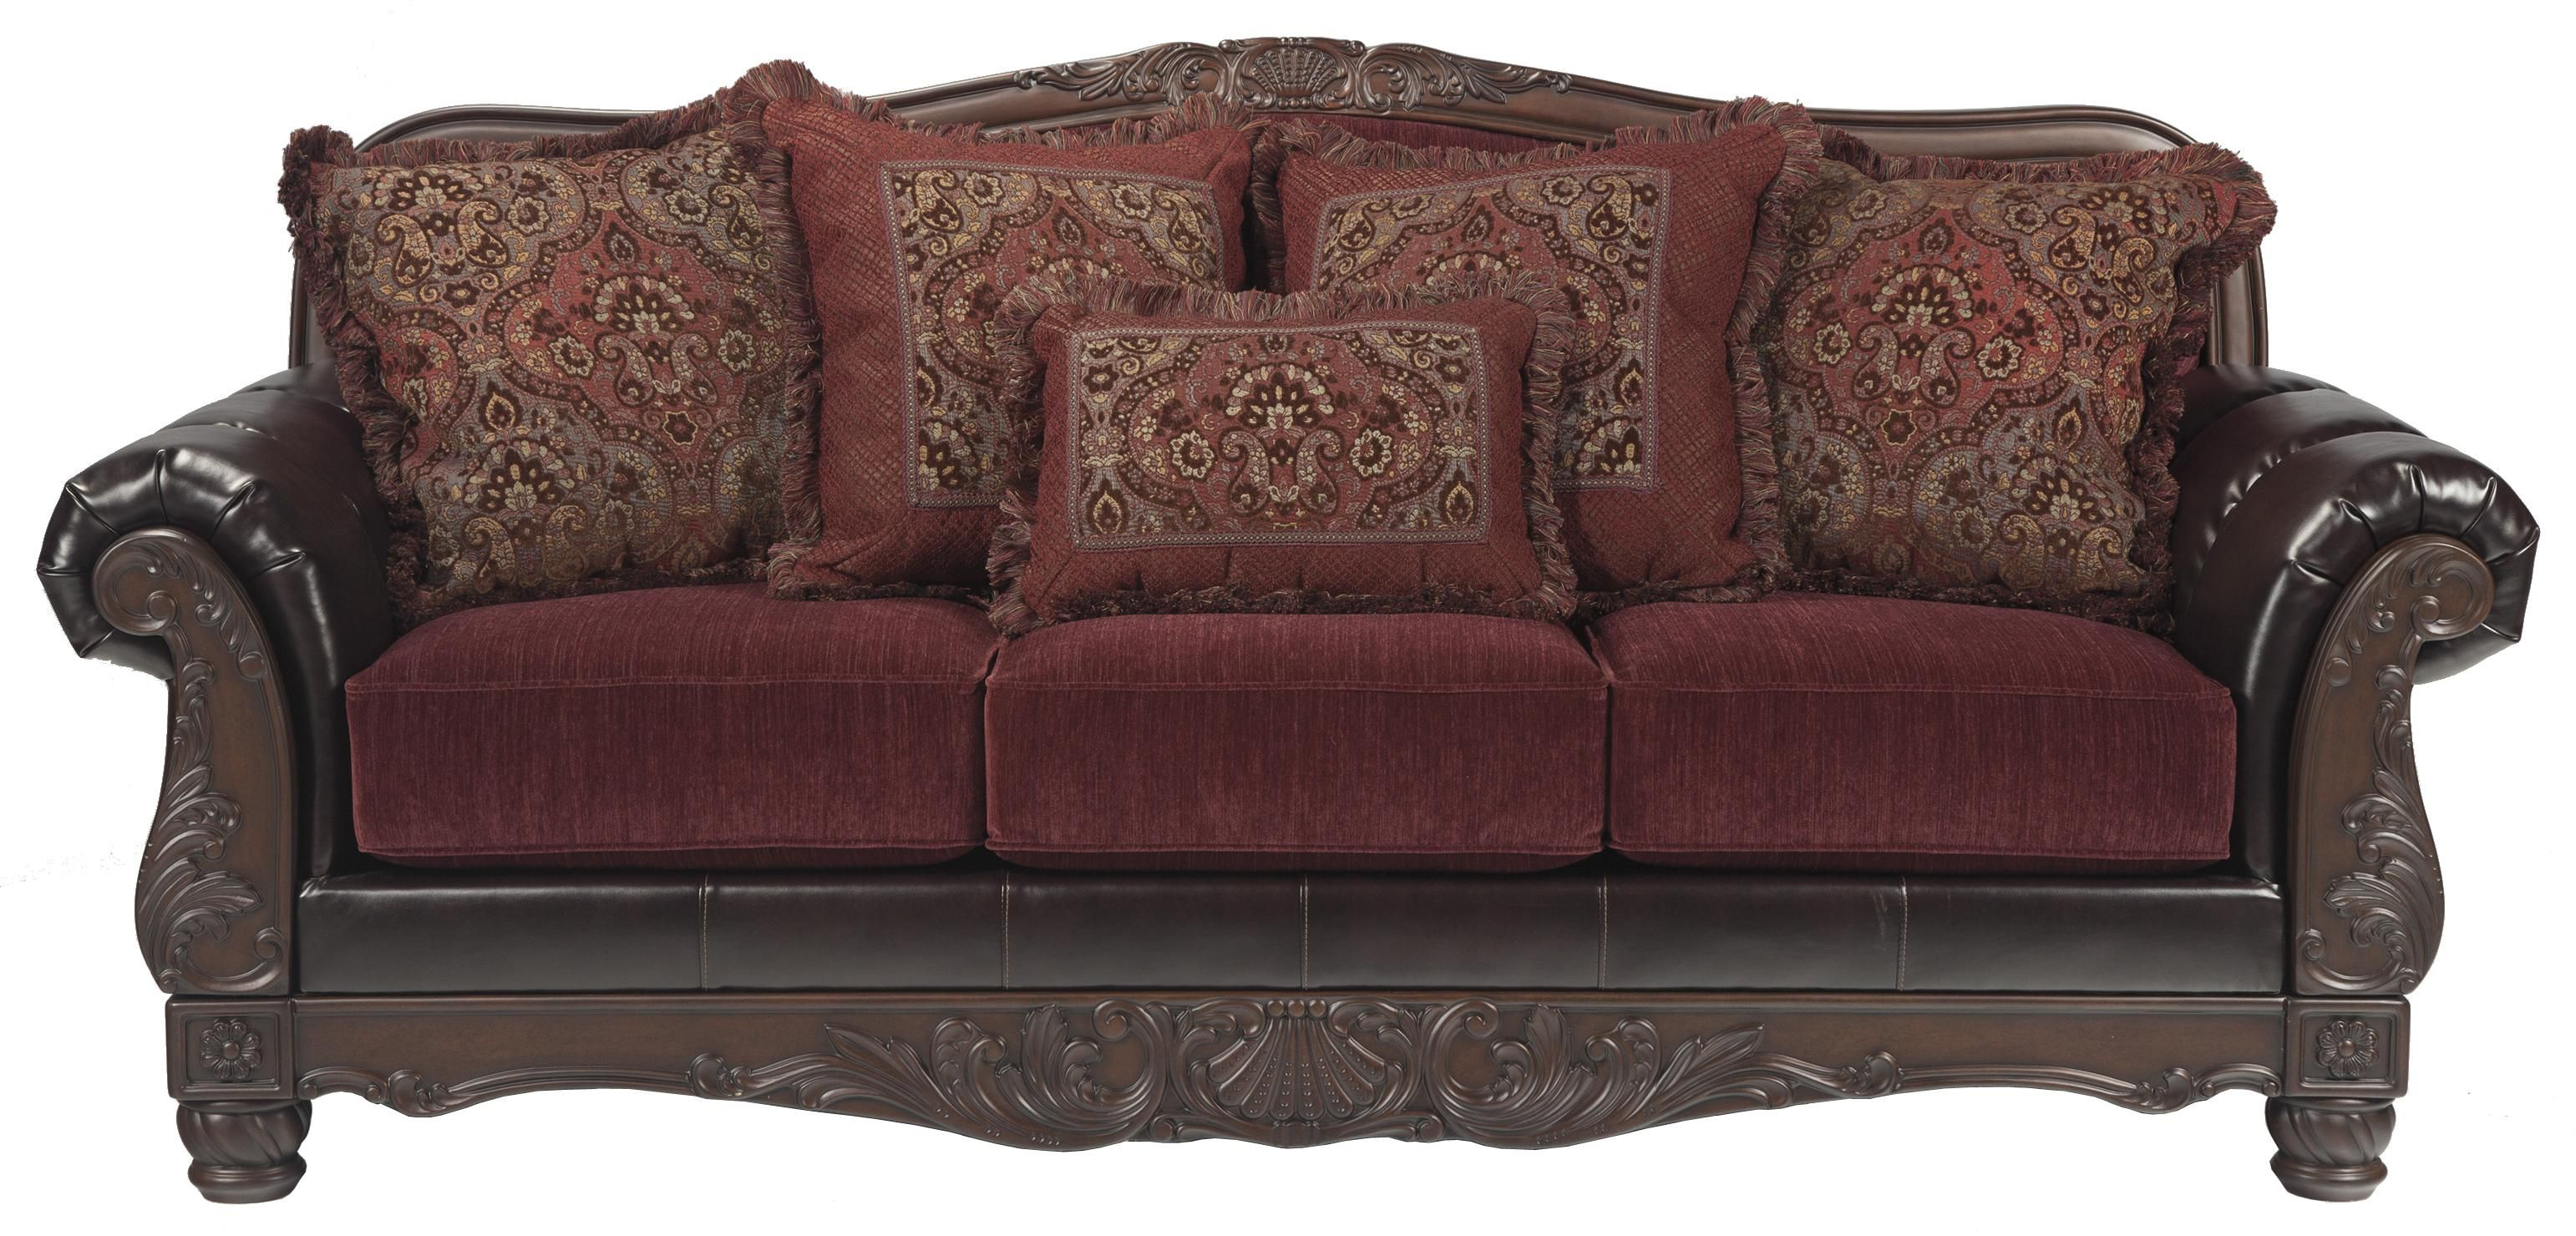 Weslynn Place Burgundy Traditional Sofa In Fabric Faux Leather By Benchcraft Part Of The Collection Sku 8240238